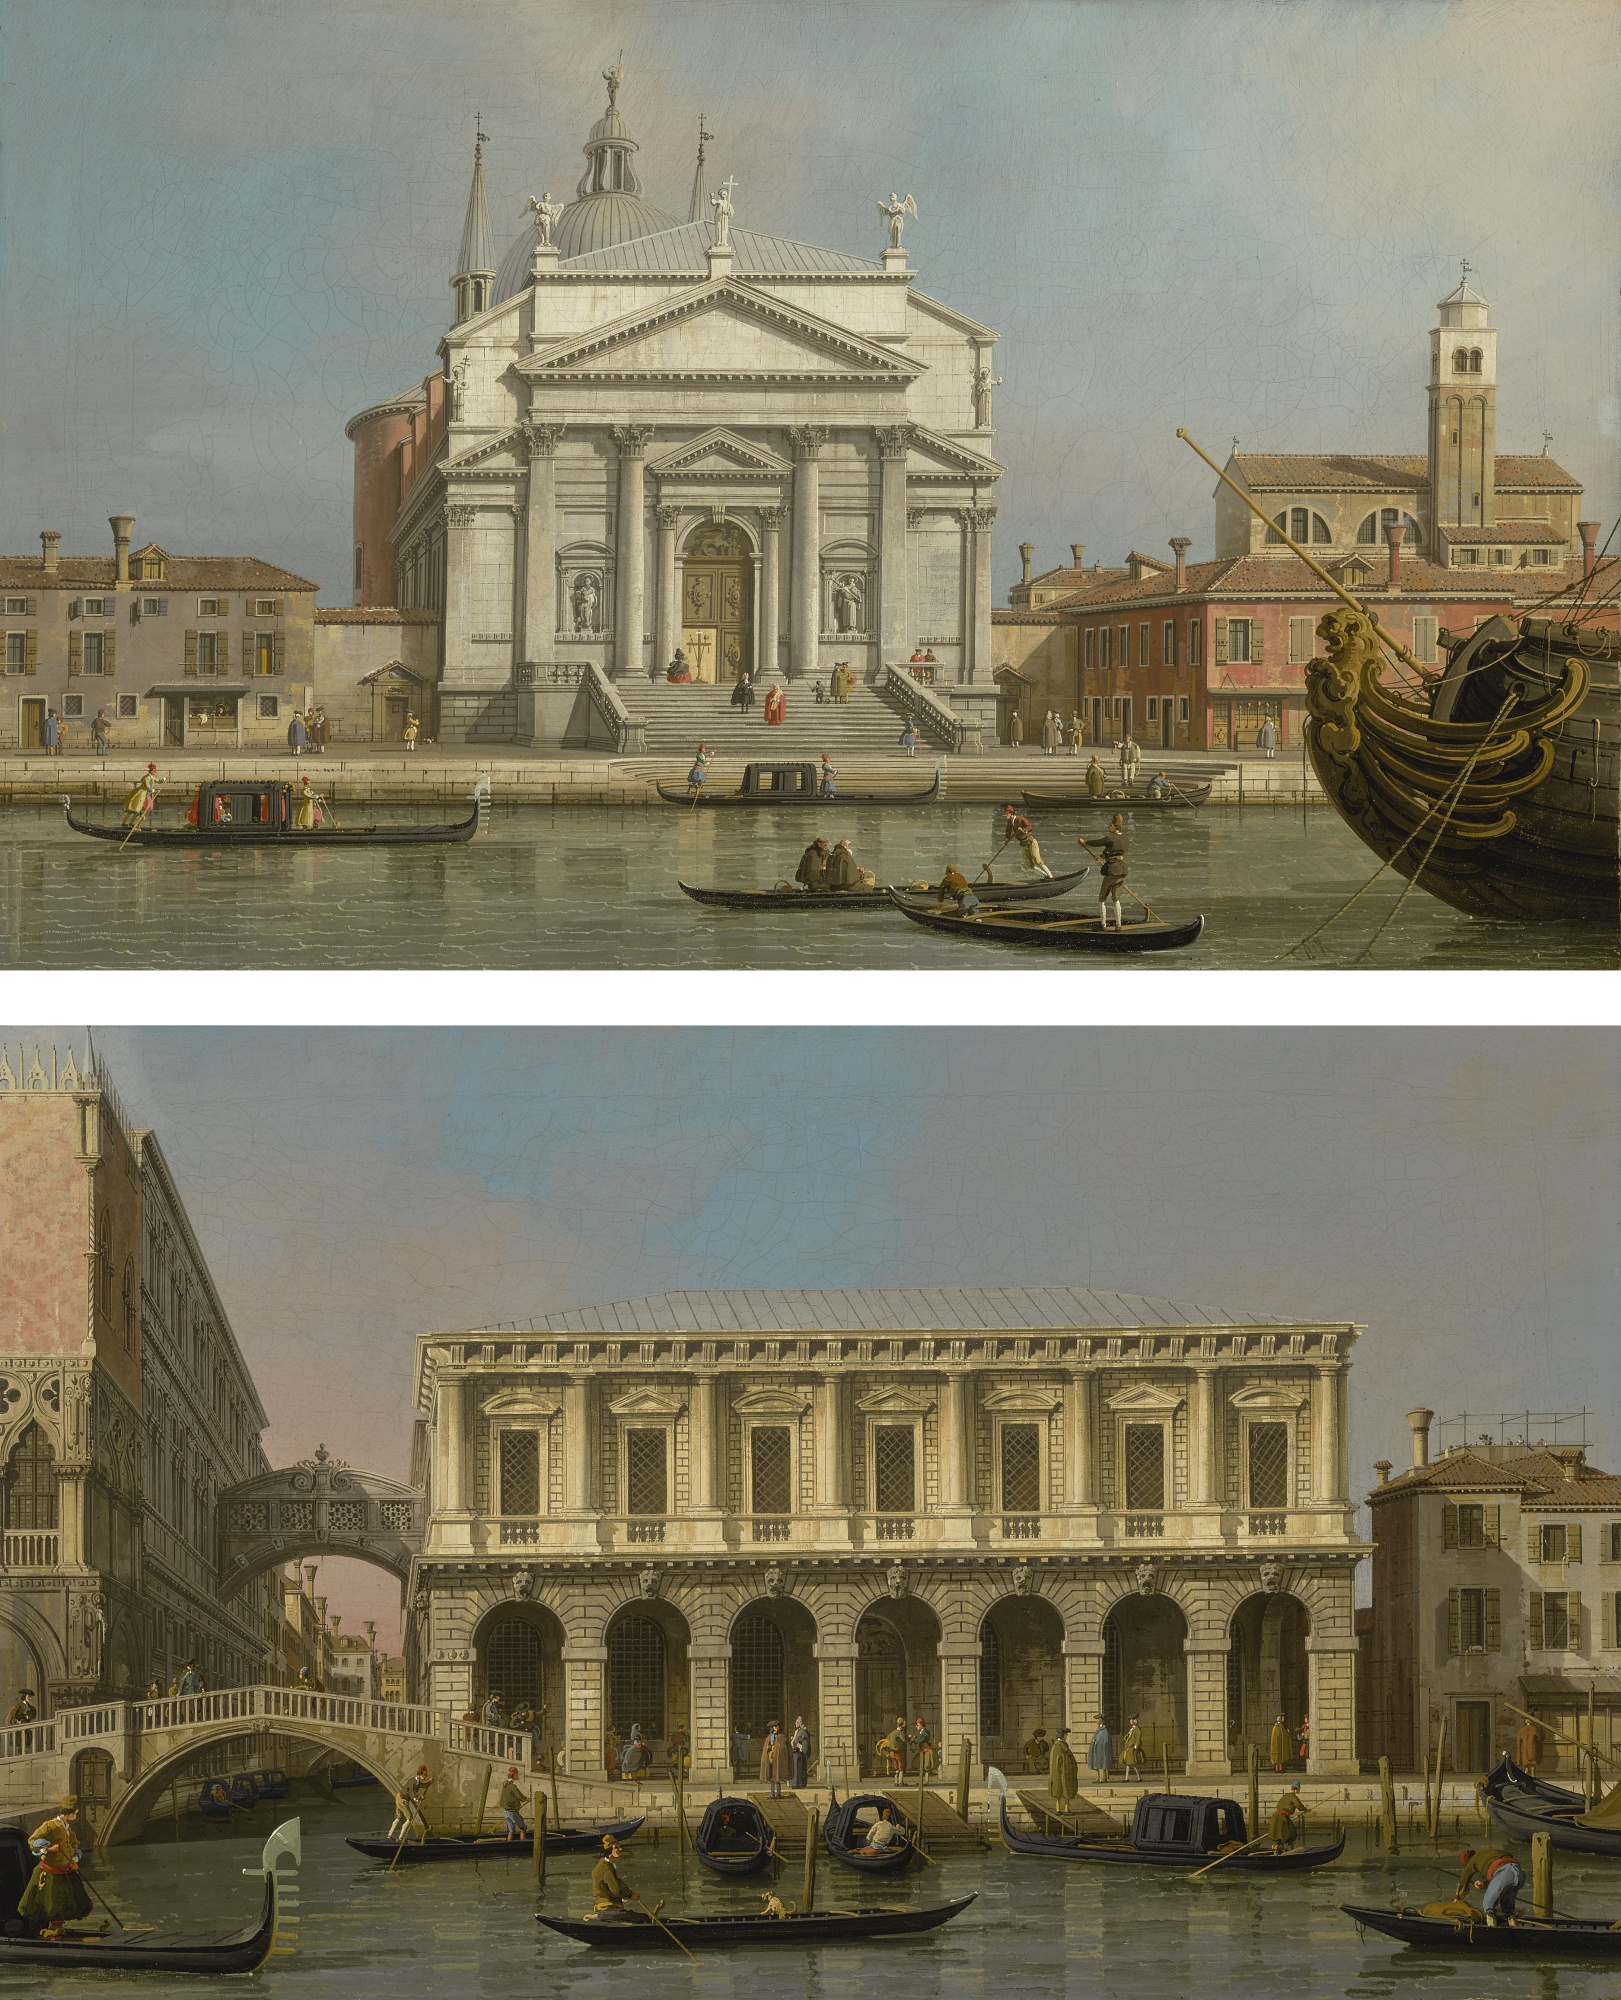 Old Master Giovanni Antonio Canal, called Canaletto VENICE, THE CHURCHES OF THE REDENTORE AND SAN GIACOMO; VENICE, THE PRISONS AND THE BRIDGE OF SIGHS, LOOKING NORTHWEST FROM THE BALCONY Estimate 3,000,000 — 4,000,000 USD LOT SOLD. 4,179,500 USD